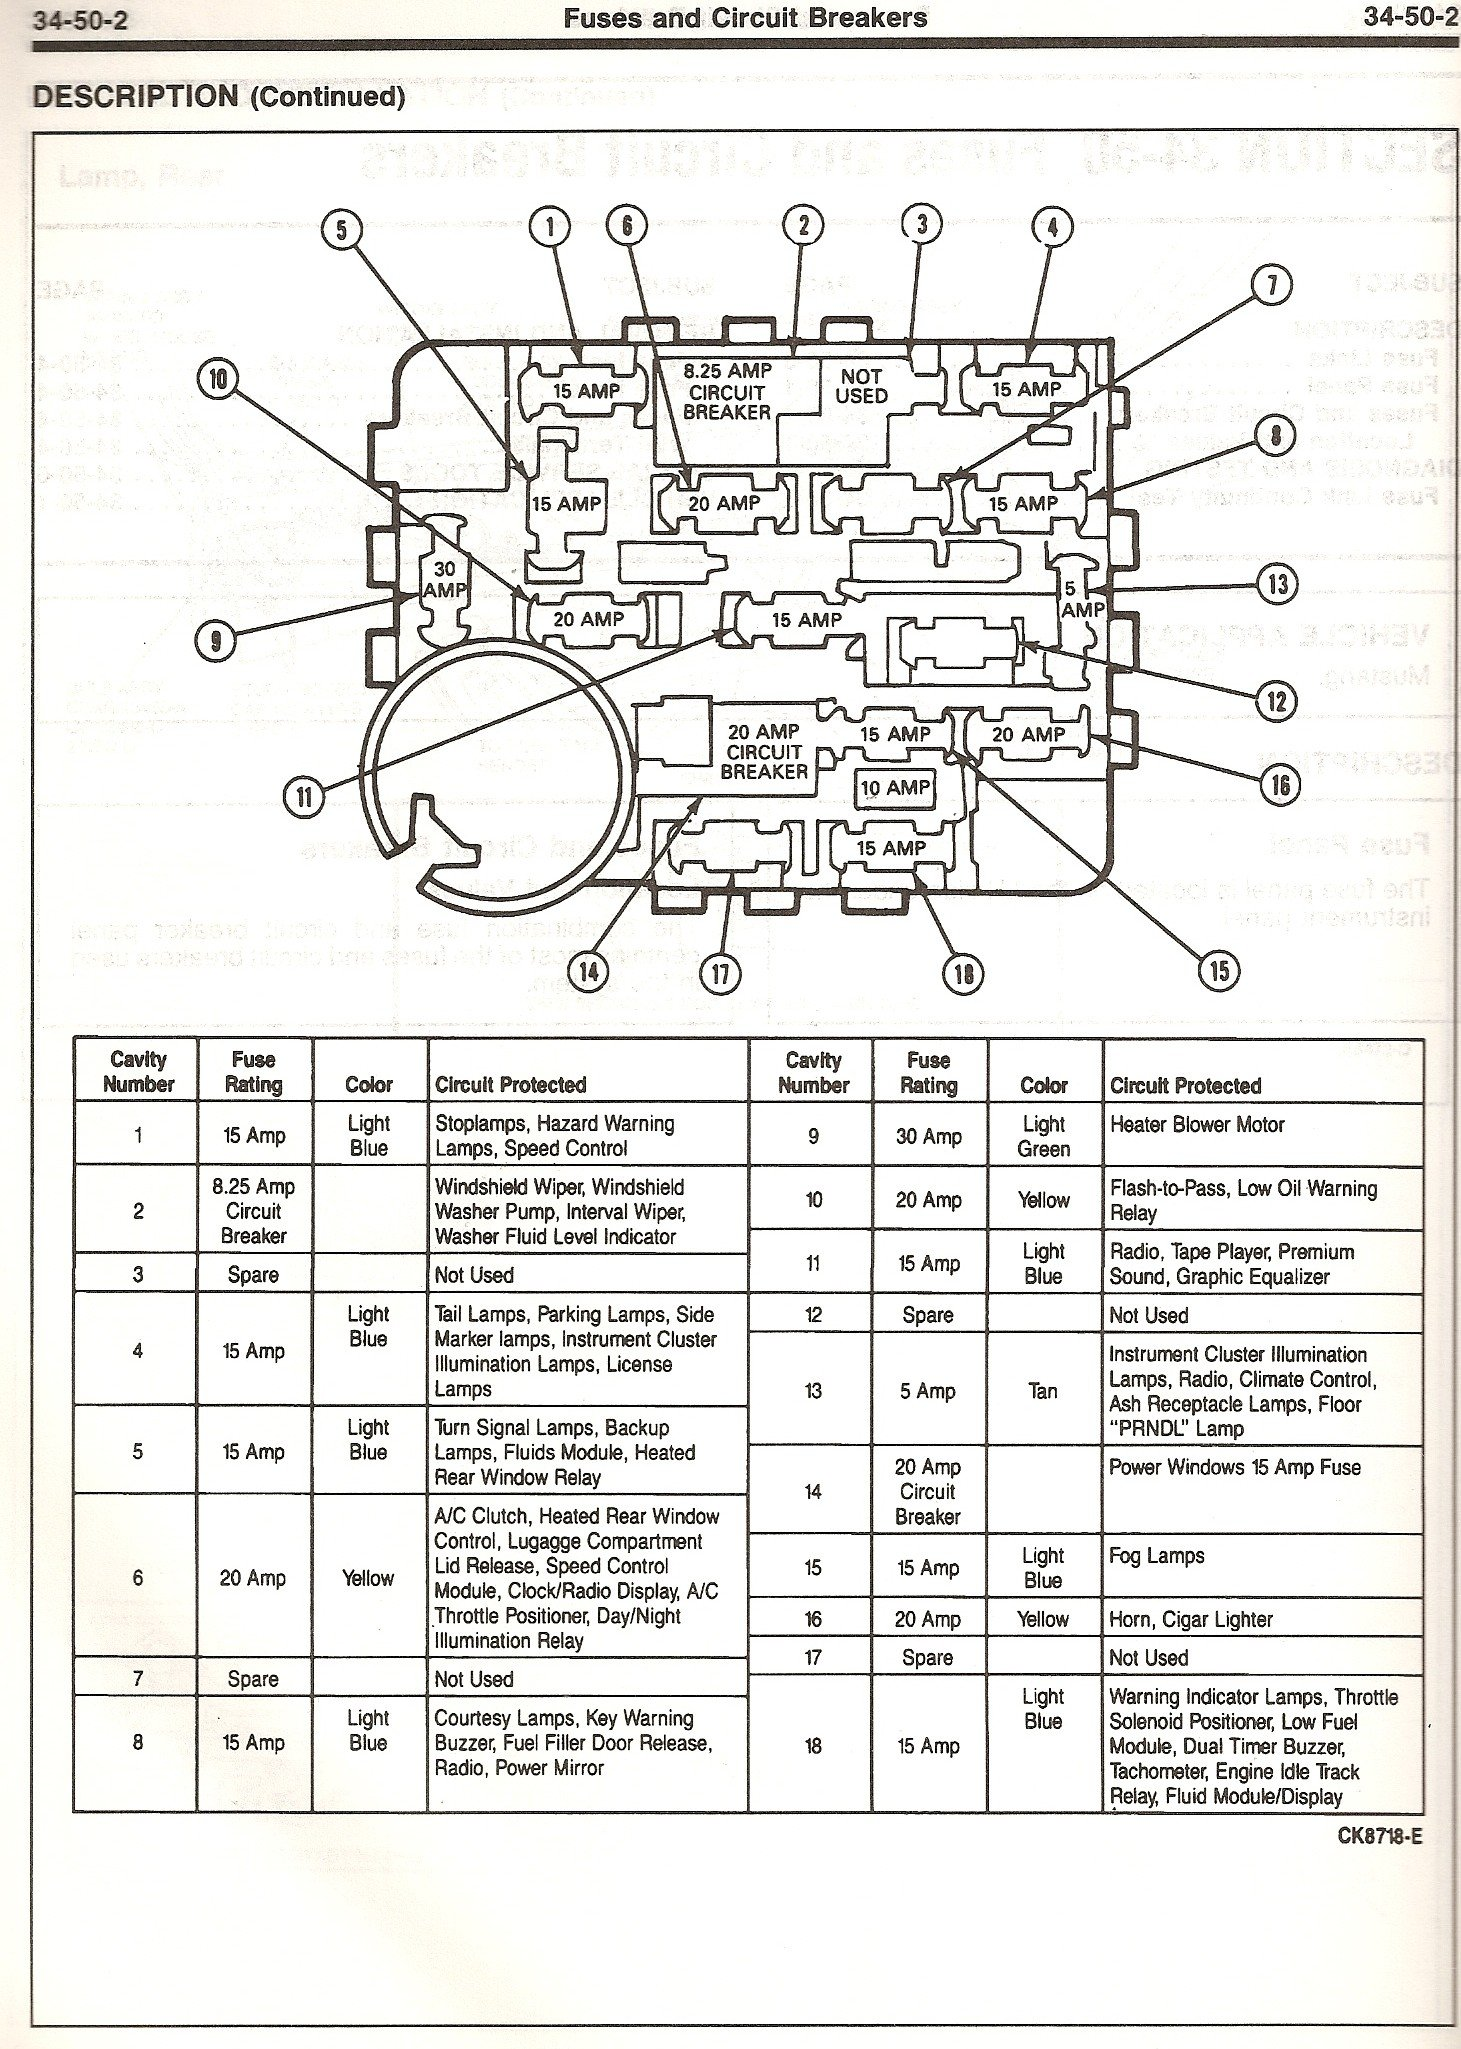 80102 1990 2 3 Mustang Missing Fuse Panel Diagram on kenworth t800 fuel tank